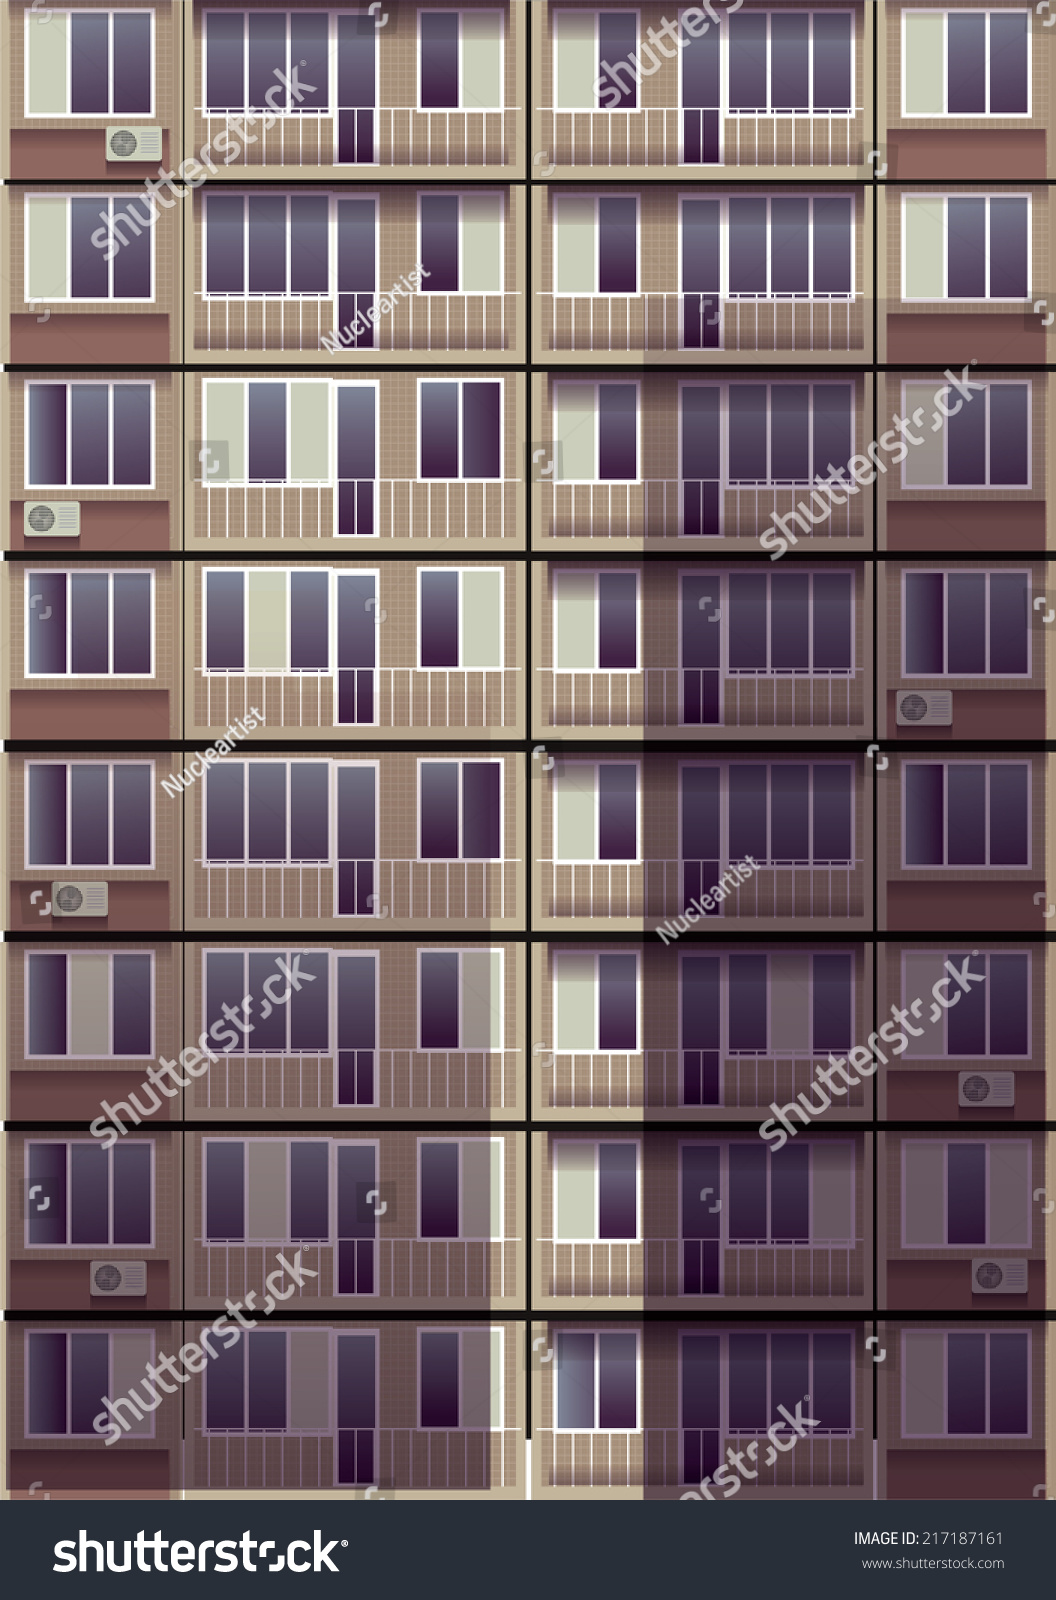 The Best 100 Tall Brick Apartment Building Image Collections